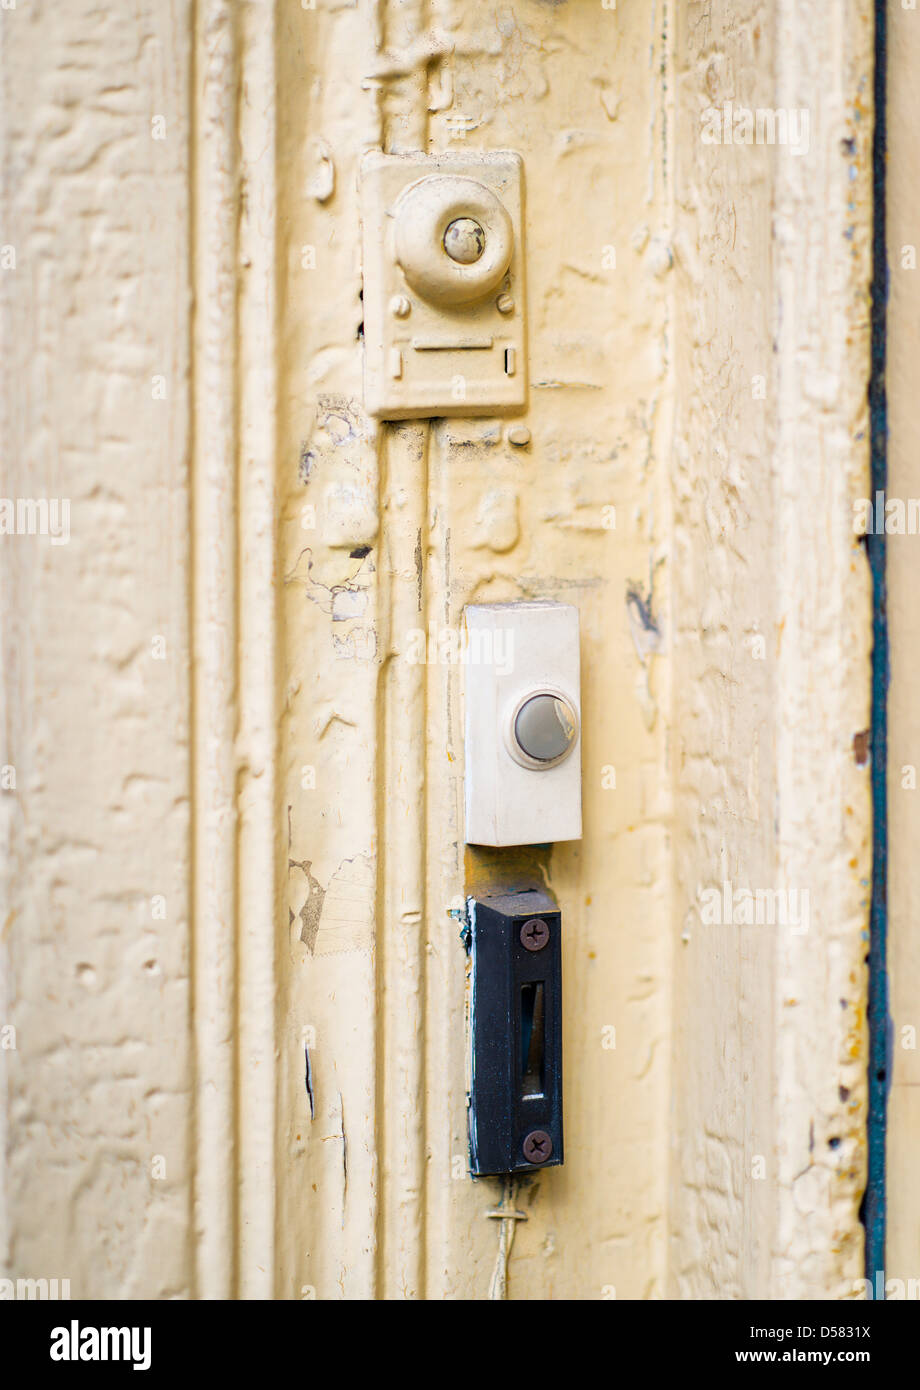 Doorbell buzzers at an apartment door. - Stock Image